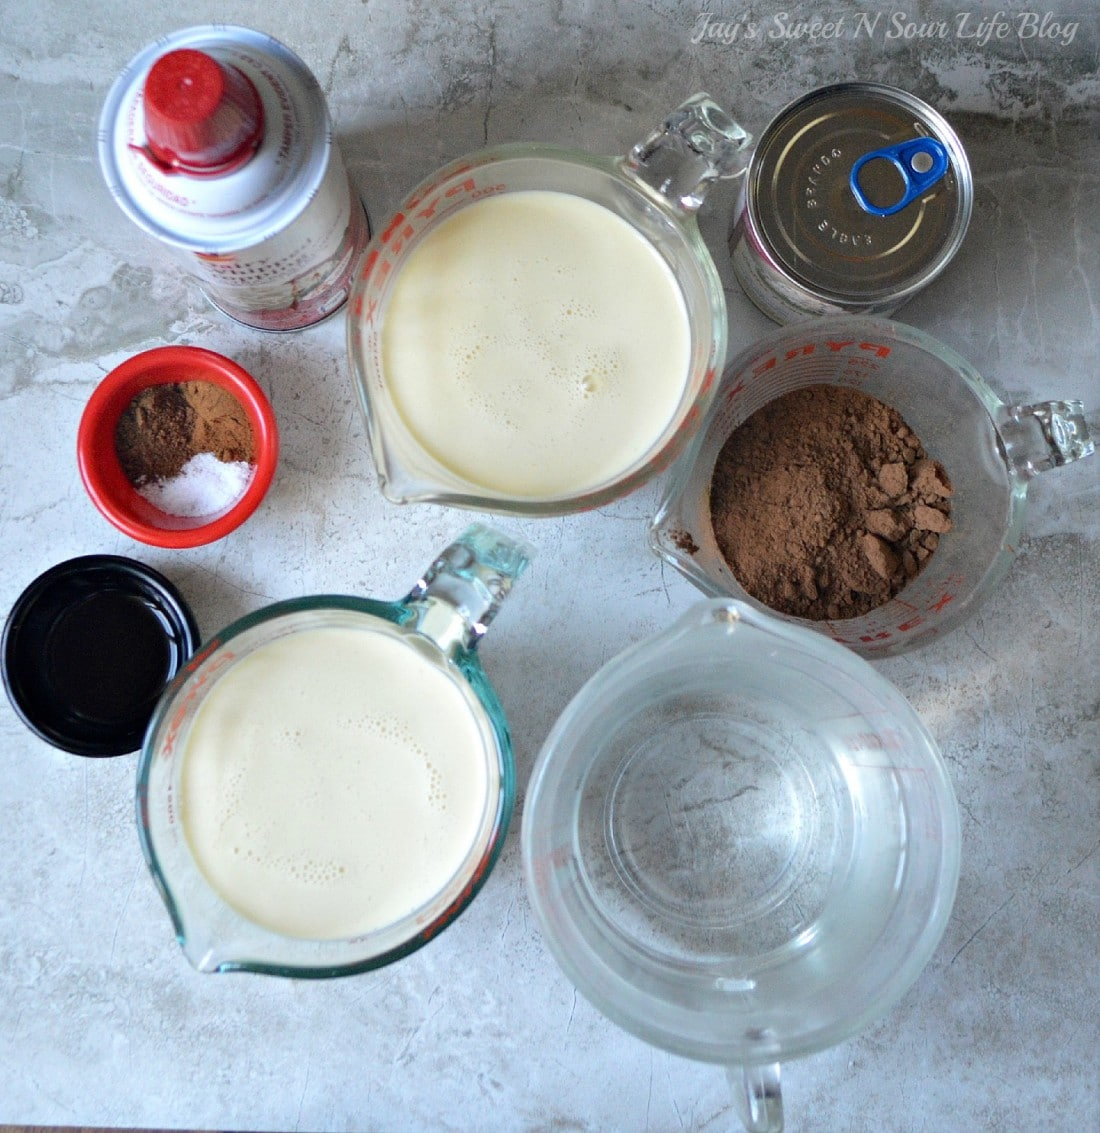 Eggnog Hot Chocolate Ingredients. This decadent Eggnog Hot Chocolate is the perfect holiday drink for Christmas Parties. Made in the slow cooker, this eggnog infused hot chocolate is smooth, creamy, chocolatey, and easy to make.